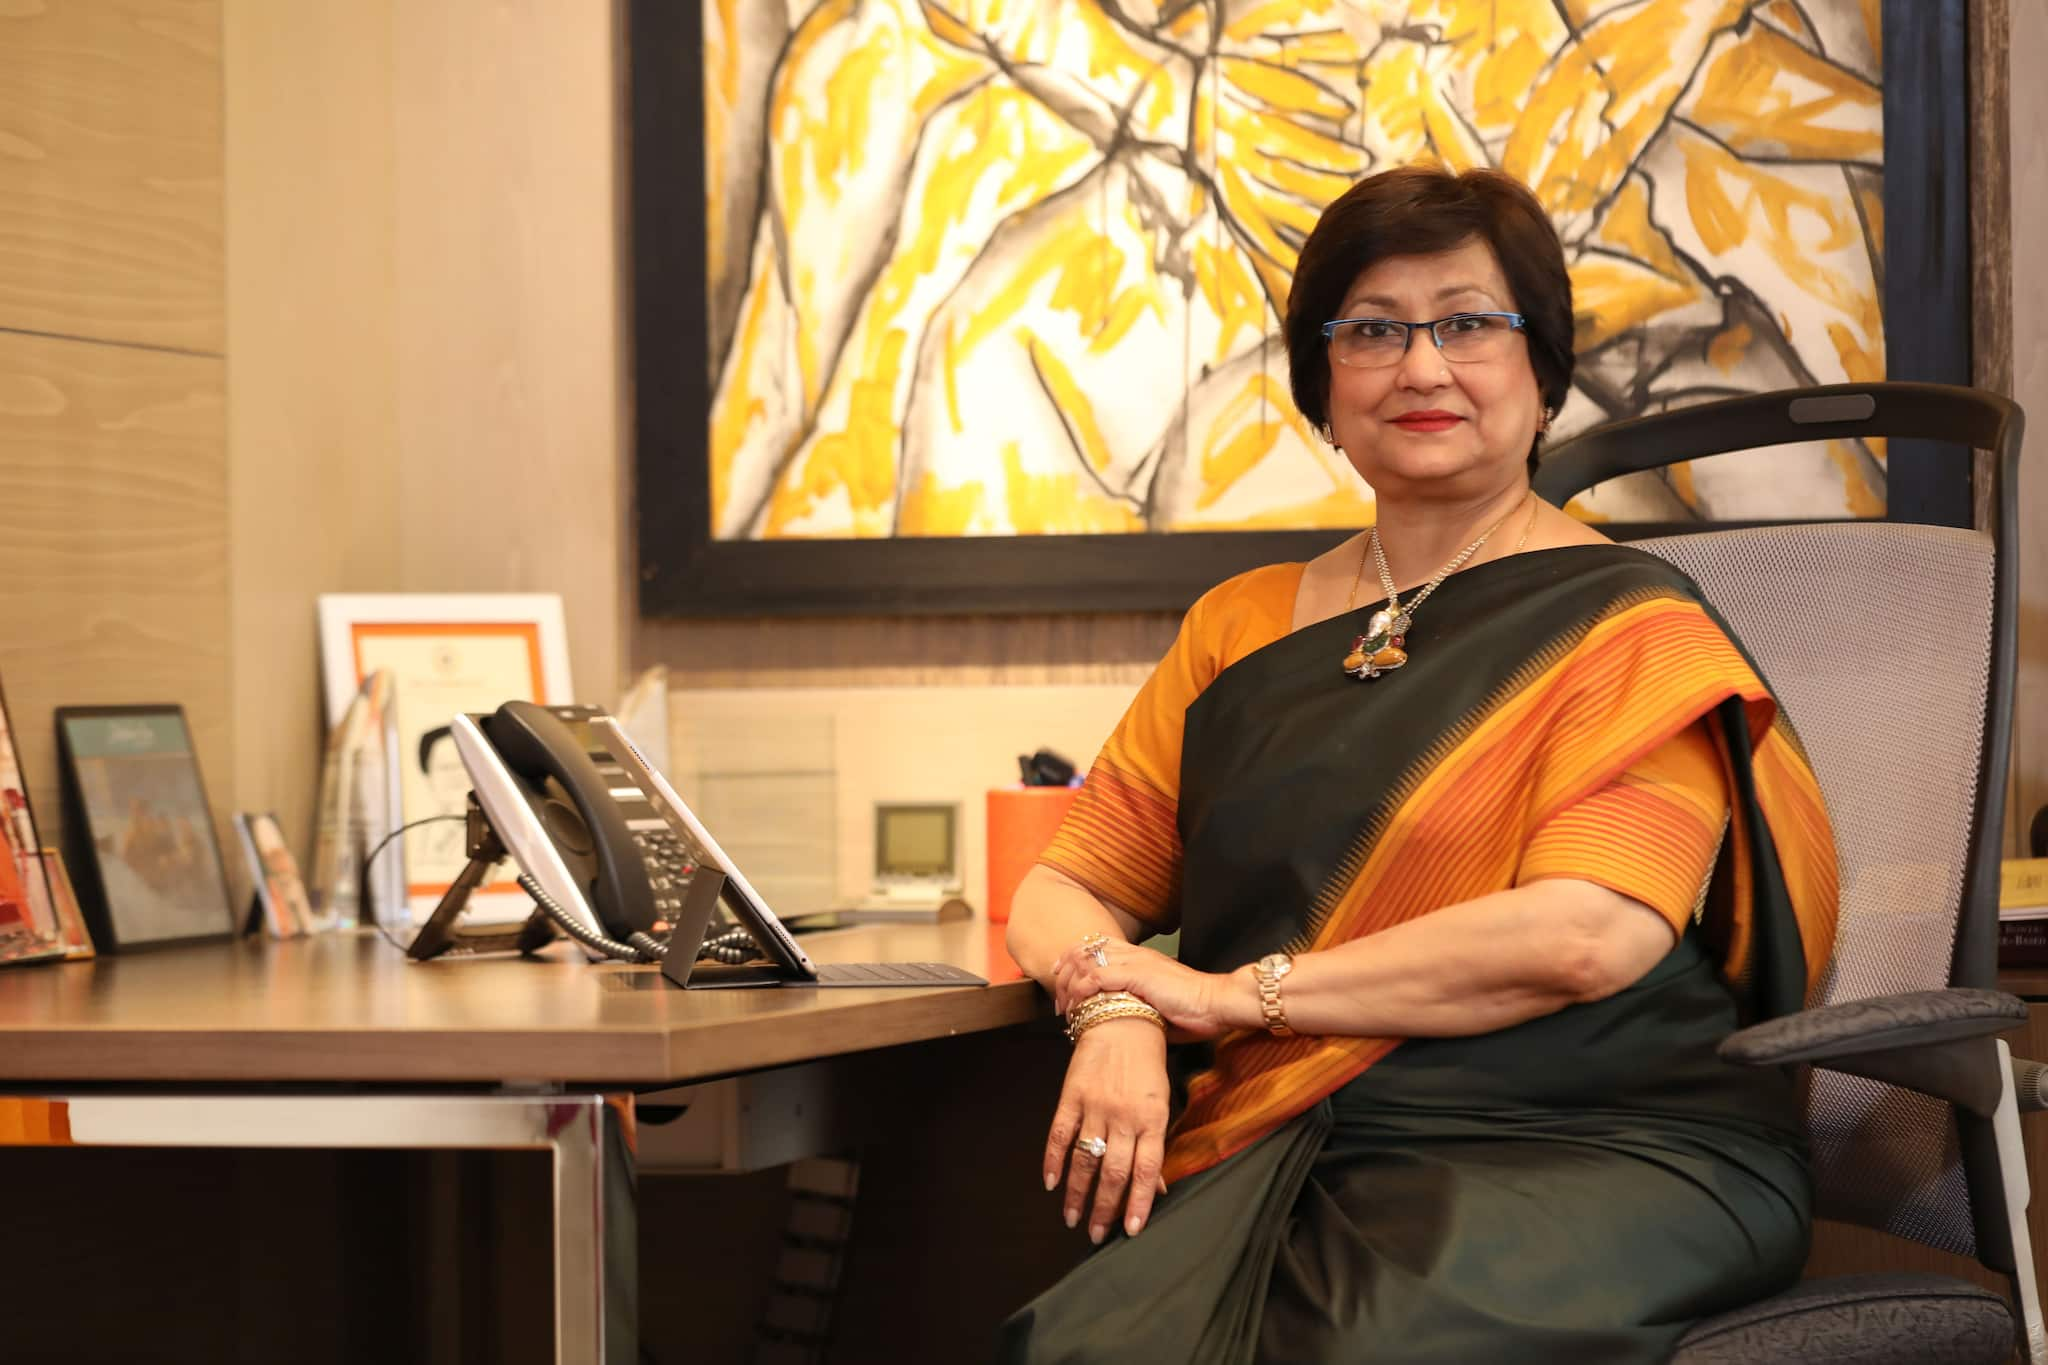 Virtual Leaders   COVID-19 lockdown underscores role of technology as game changer, says SAM & Co Managing Partner Pallavi Shroff